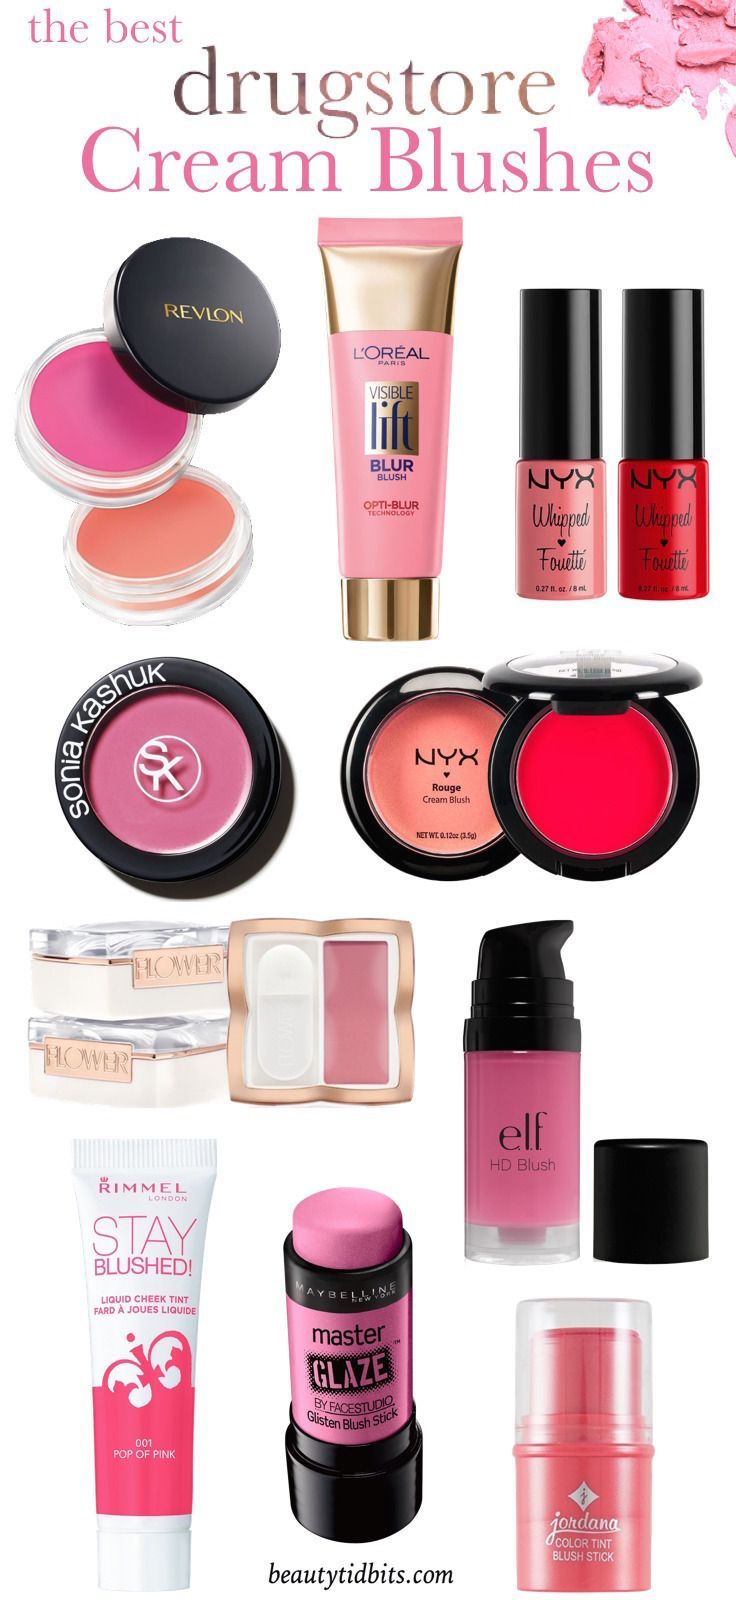 Product Testing: Top 5 Cream Blushes For Any SkinTone